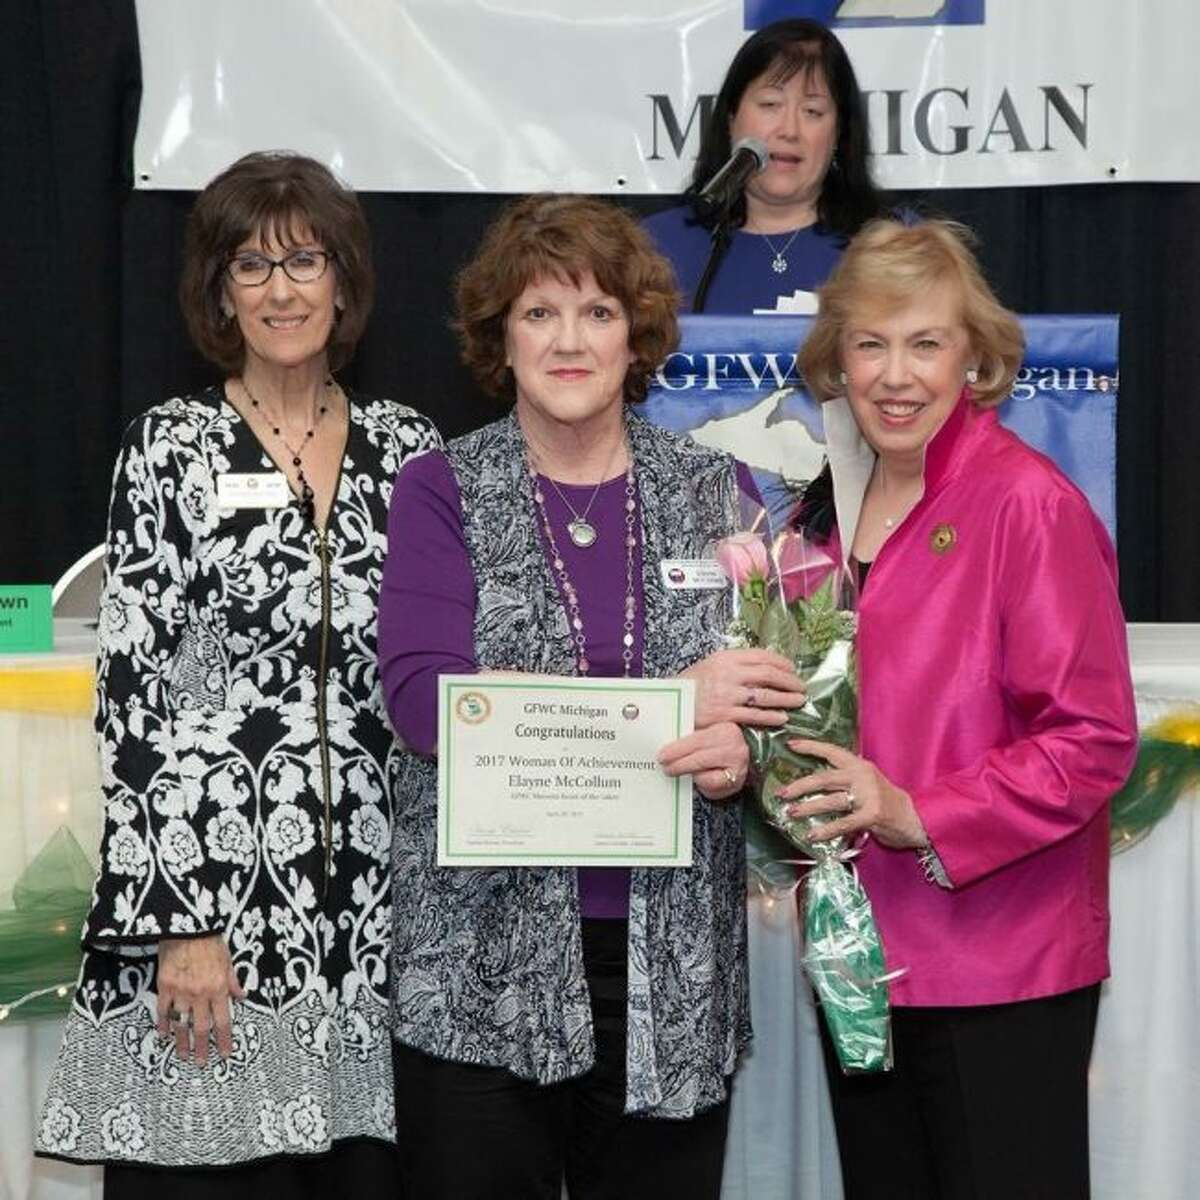 Pictured are (from left) Donna Brown, General Federation of Women's Clubs Michigan president; Elayne McCollum, GFWC Mecosta - Heart of the Lakes 2017 Woman of Achievement; Mary Ellen Brock, GFWC International president-elect; and (at podium) Laurie Geralds, Madison Heights women's club president. (Courtesy photo)